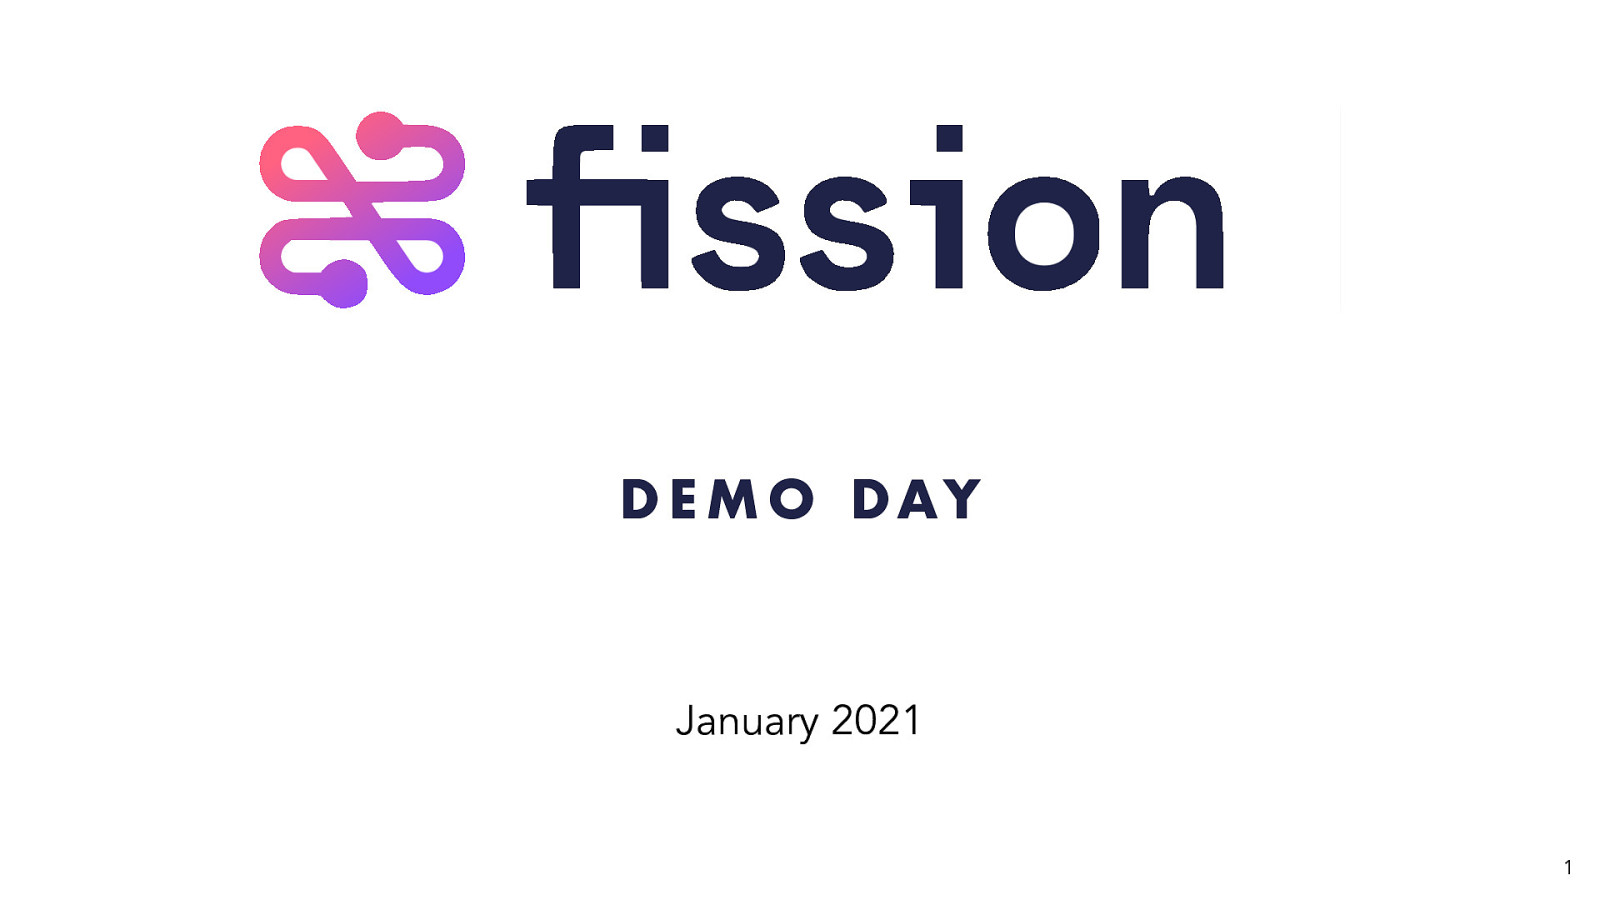 Fission Demo Day February 2021 by Boris Mann